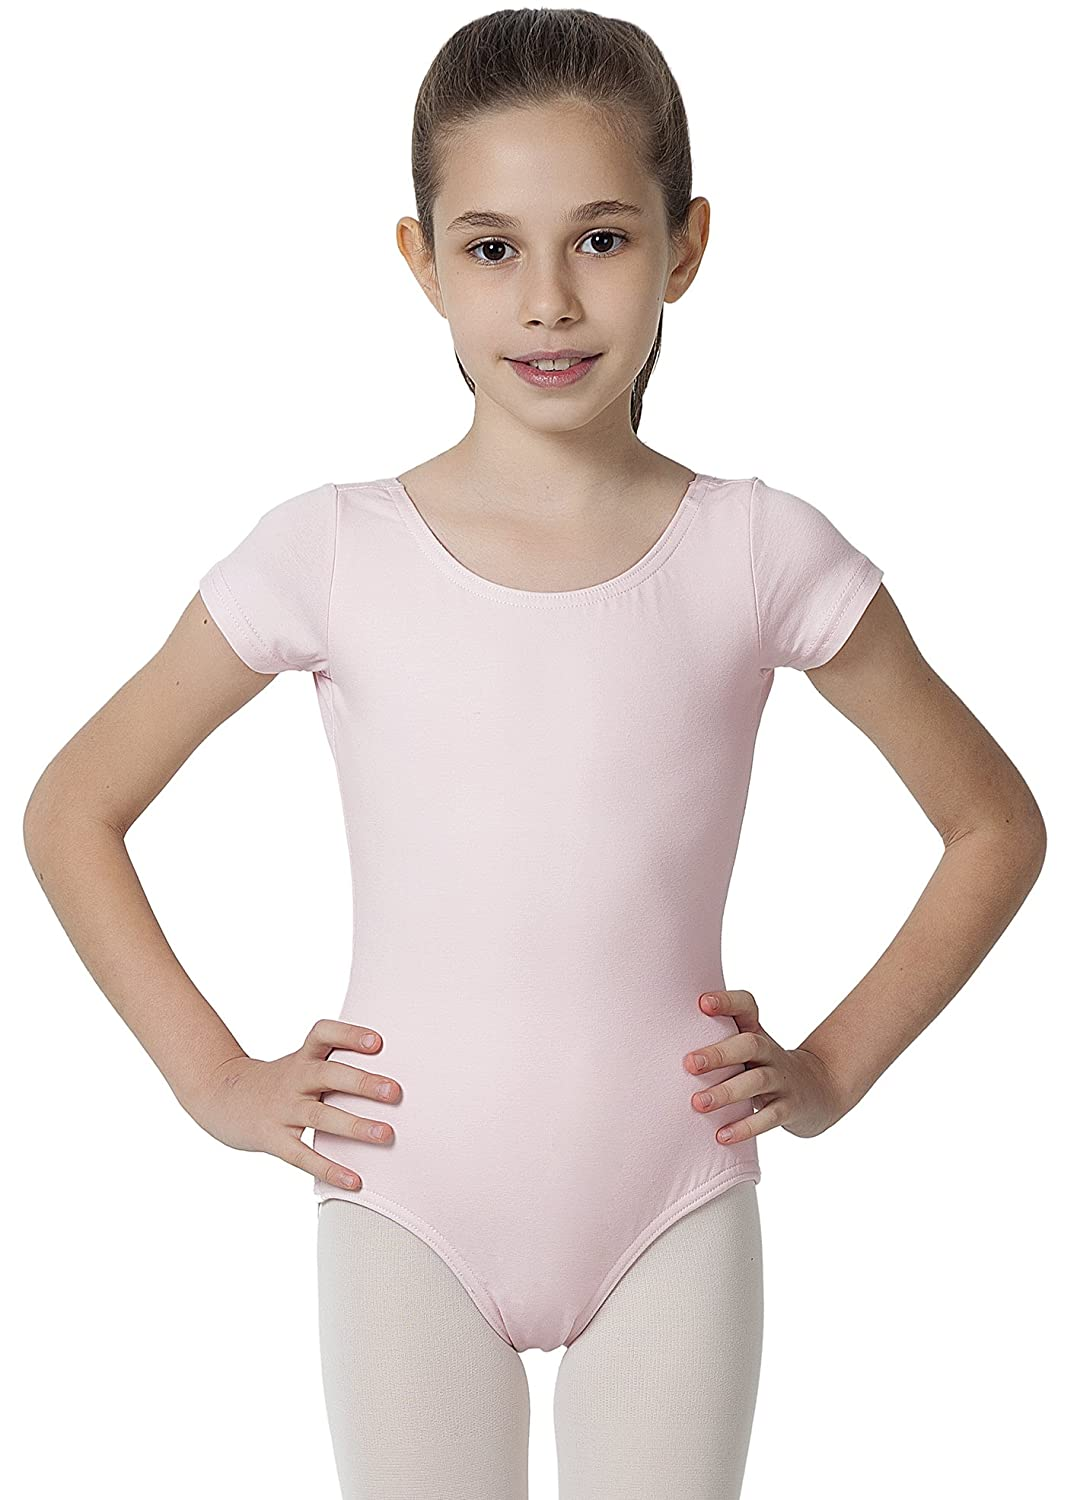 d1efc15c Classic Elegance – Designed for ballet dancers, gymnasts, cheer leading and  female athletes, these girl's leotards feature short sleeves and a scoop  neck ...